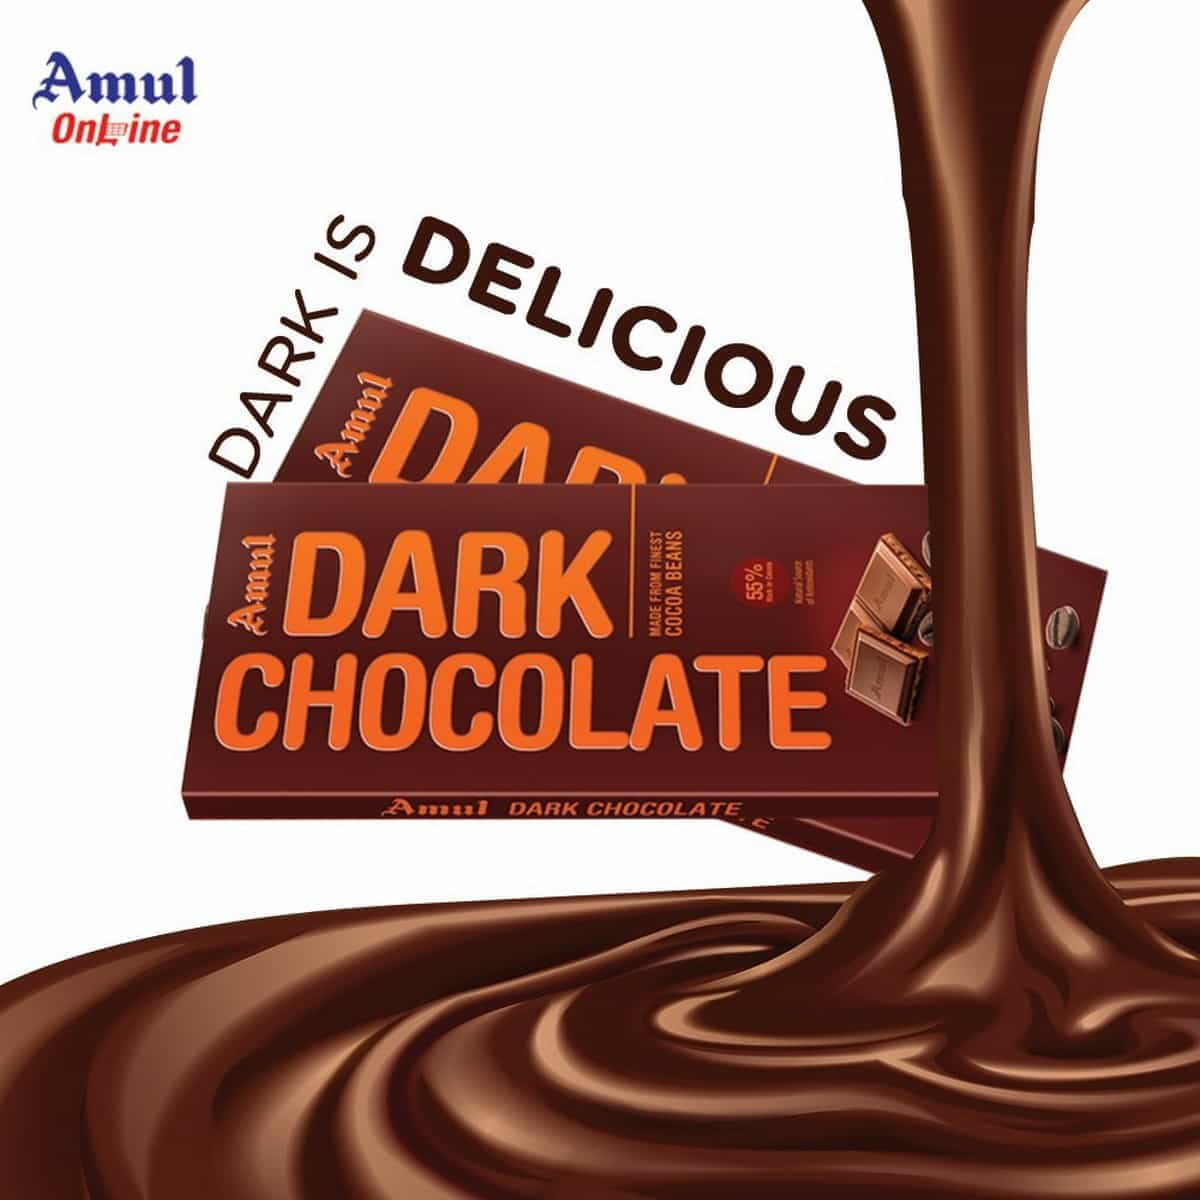 SWOT analysisi of amul chocolates - 3